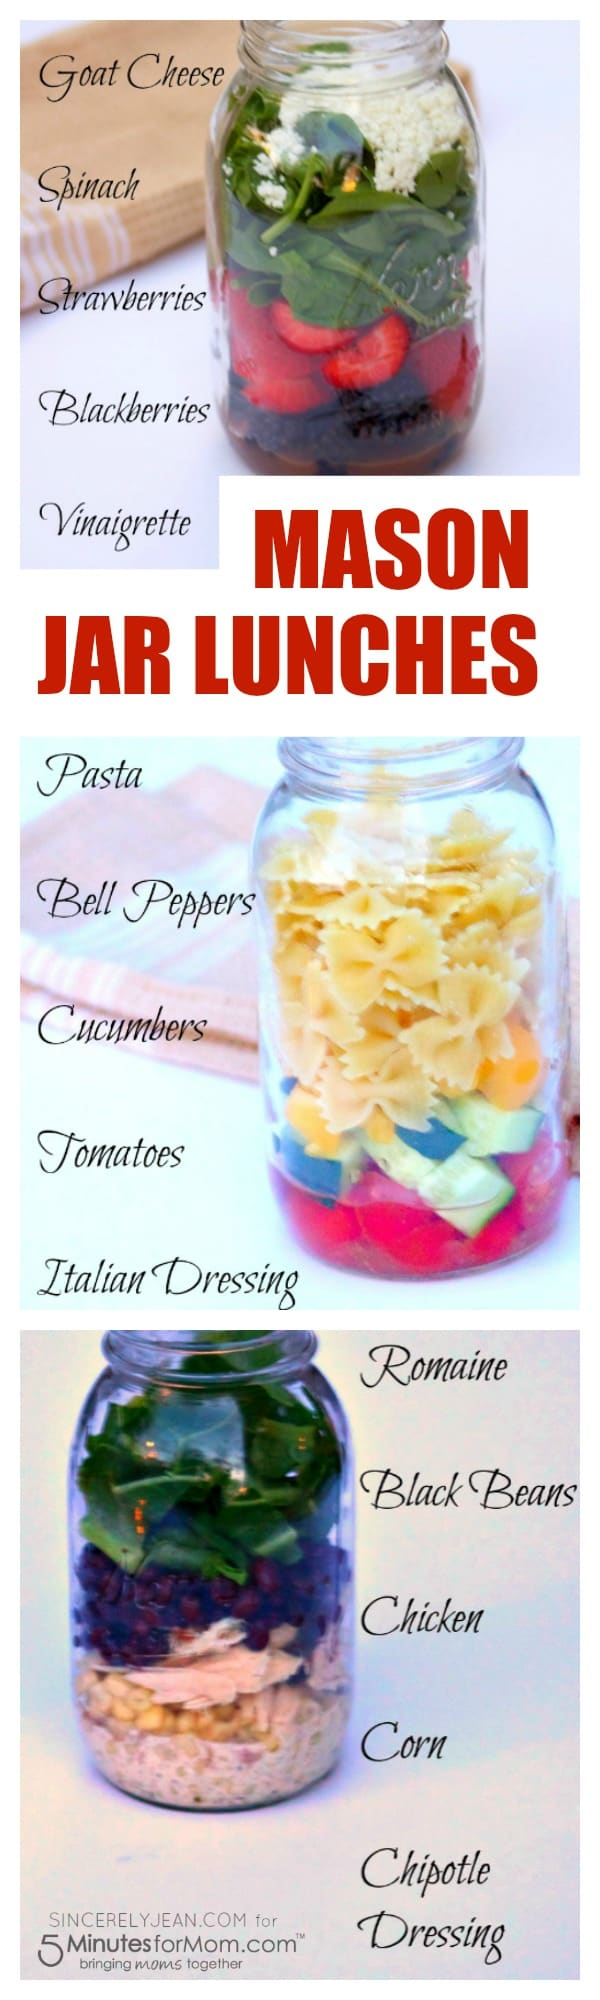 Simple Lunches Mason Jar Salads